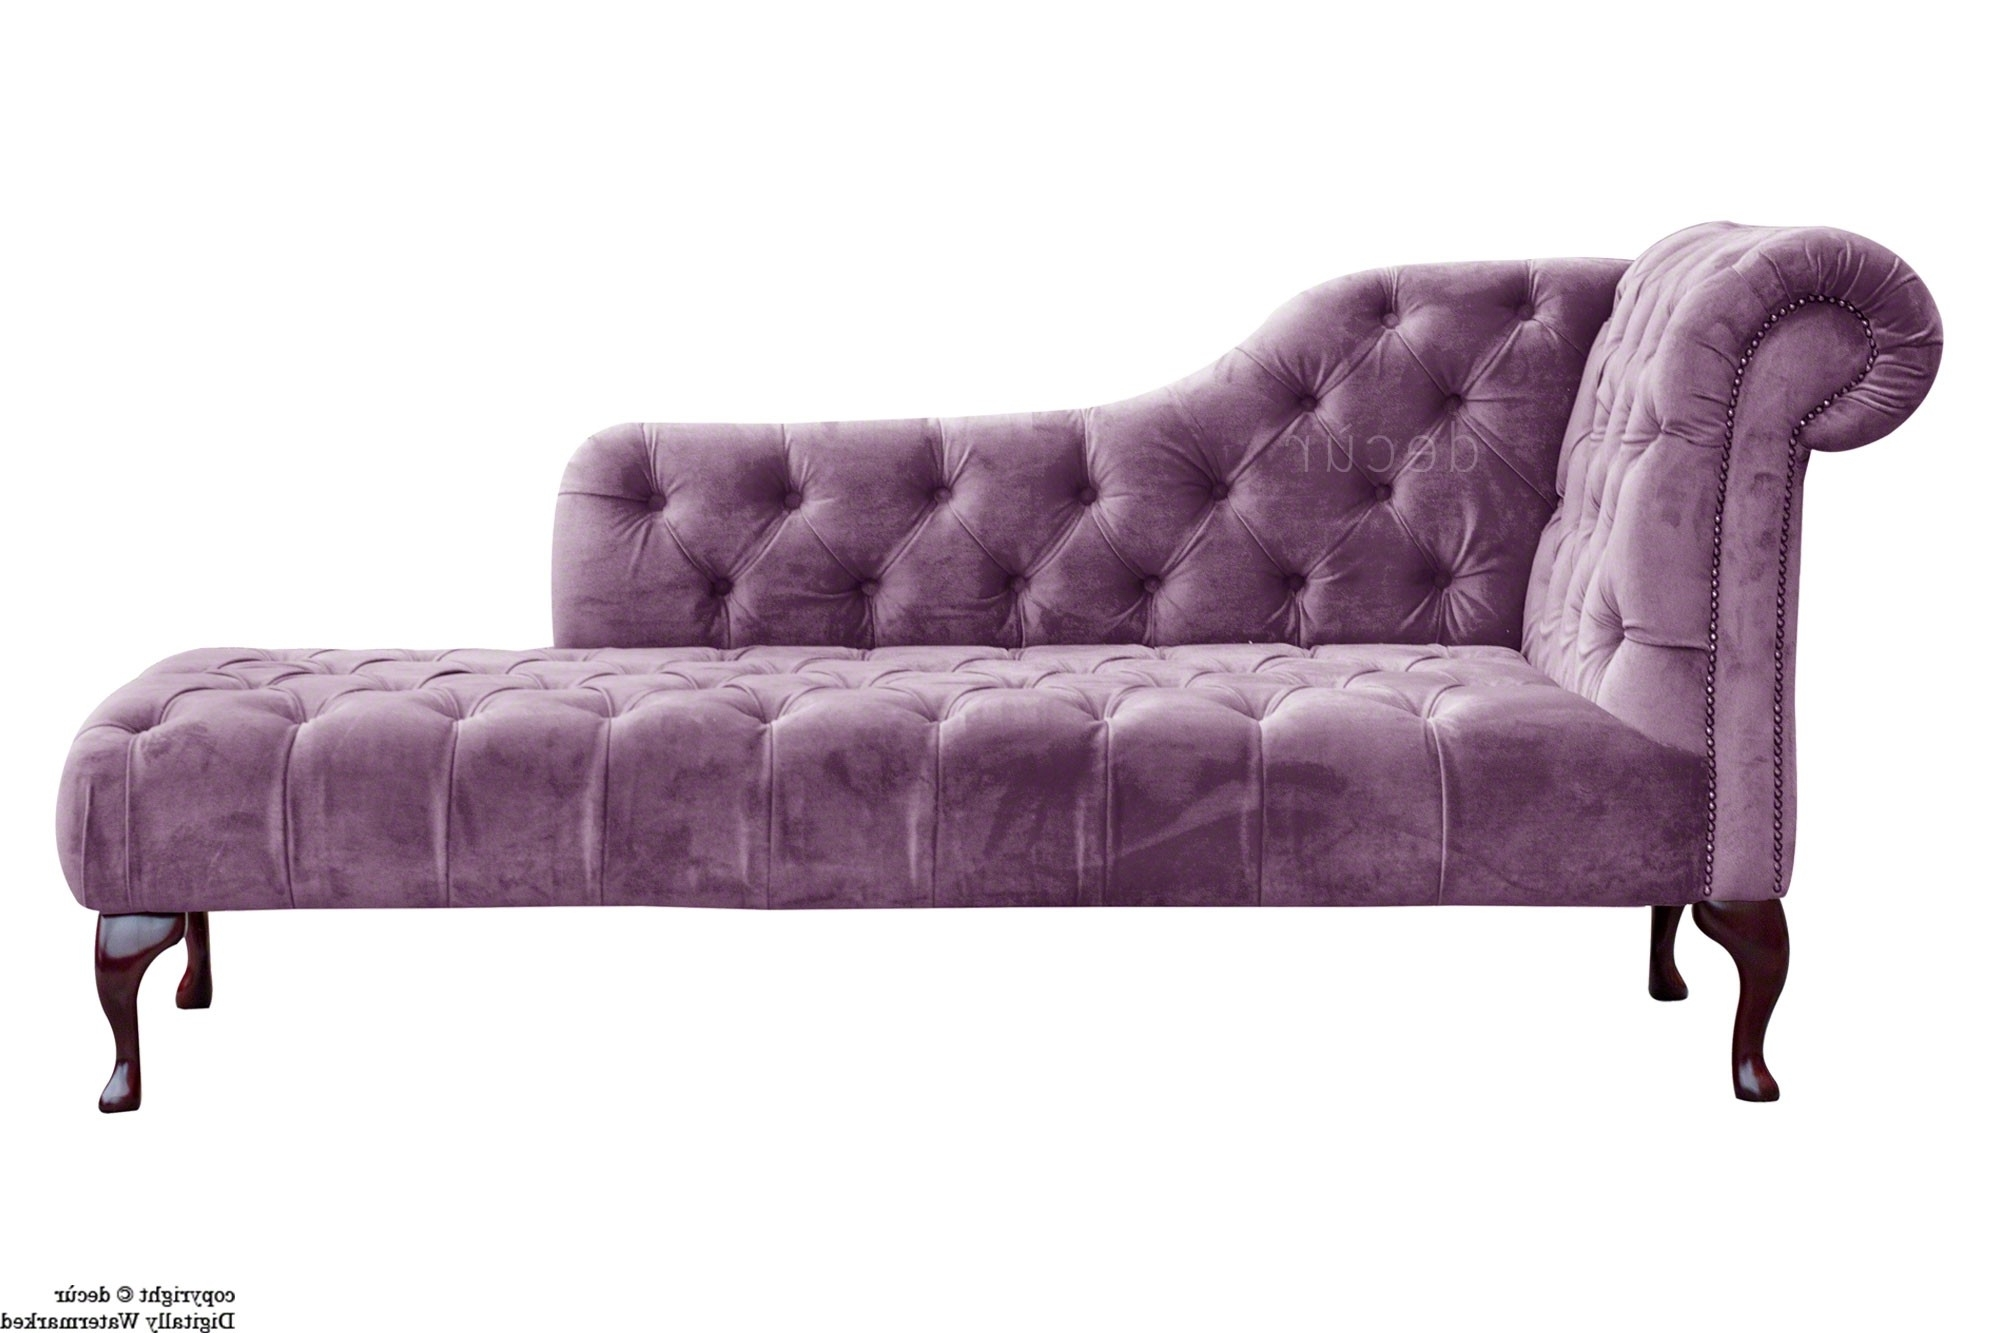 Stunning Purple Chaise Longue Ideas – Joshkrajcik – Joshkrajcik Intended For Well Liked Purple Chaise Lounges (View 12 of 15)